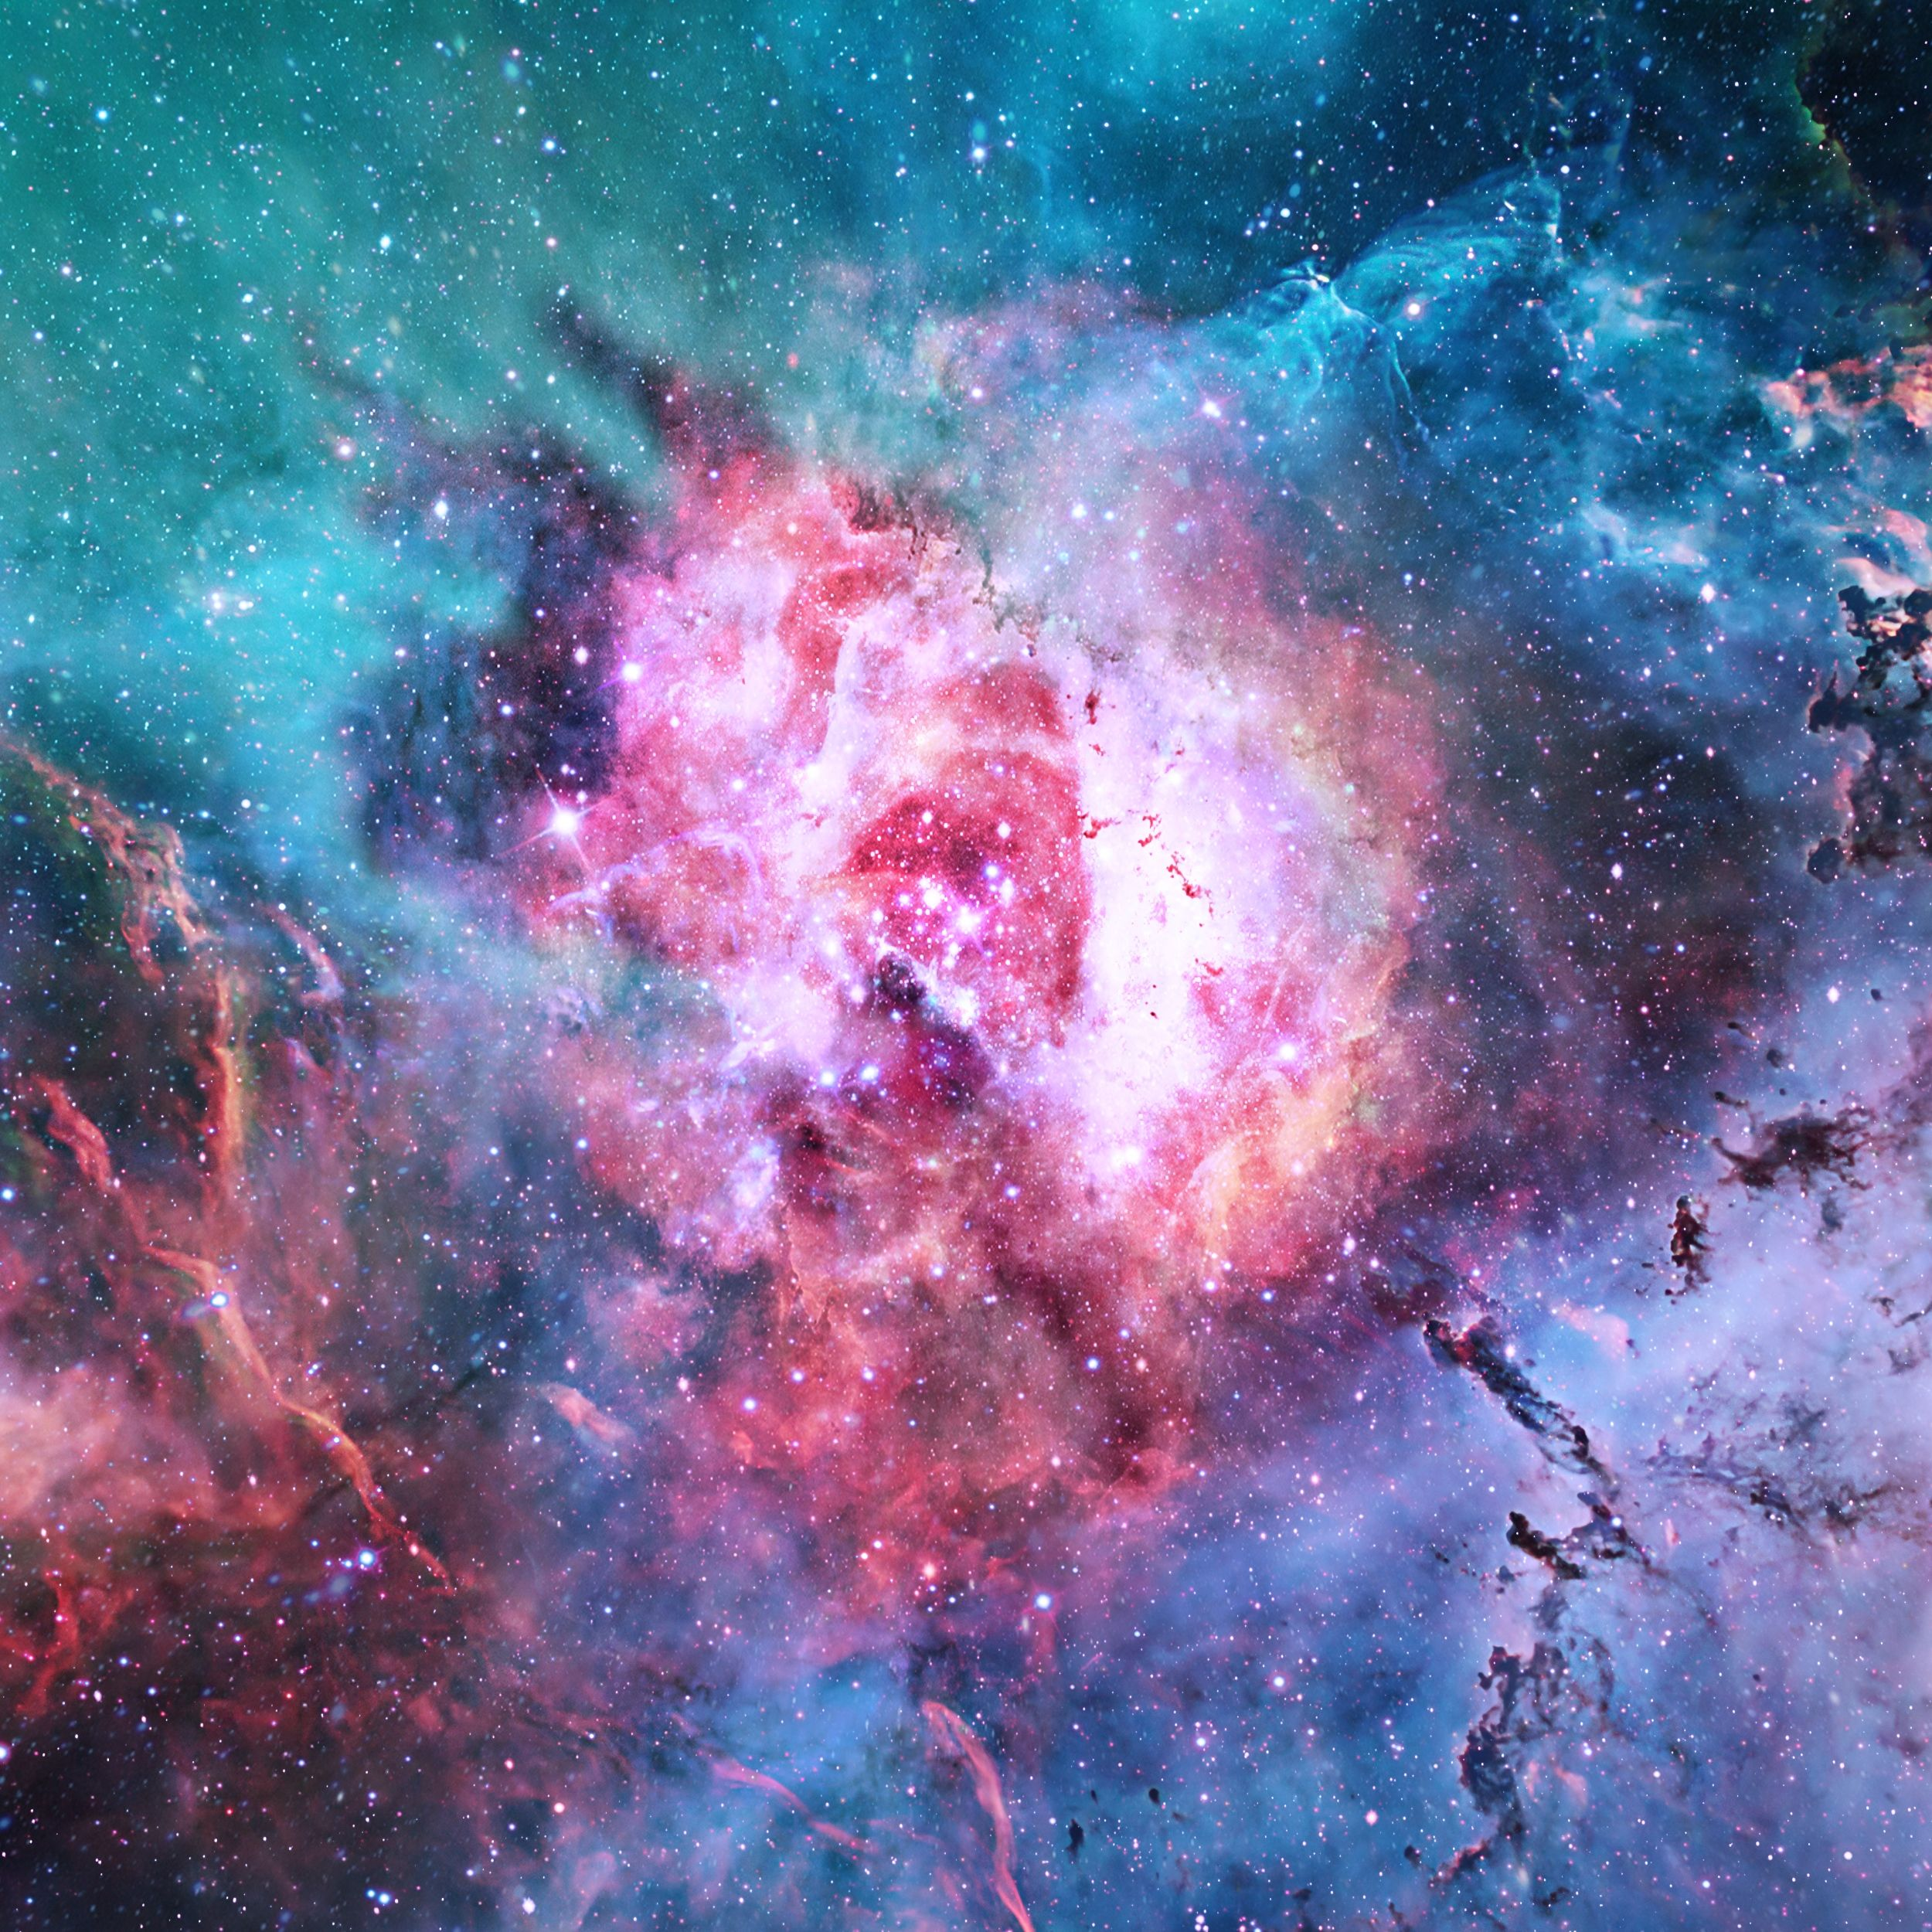 Wallpaper Space: Cosmos Space - Google Search